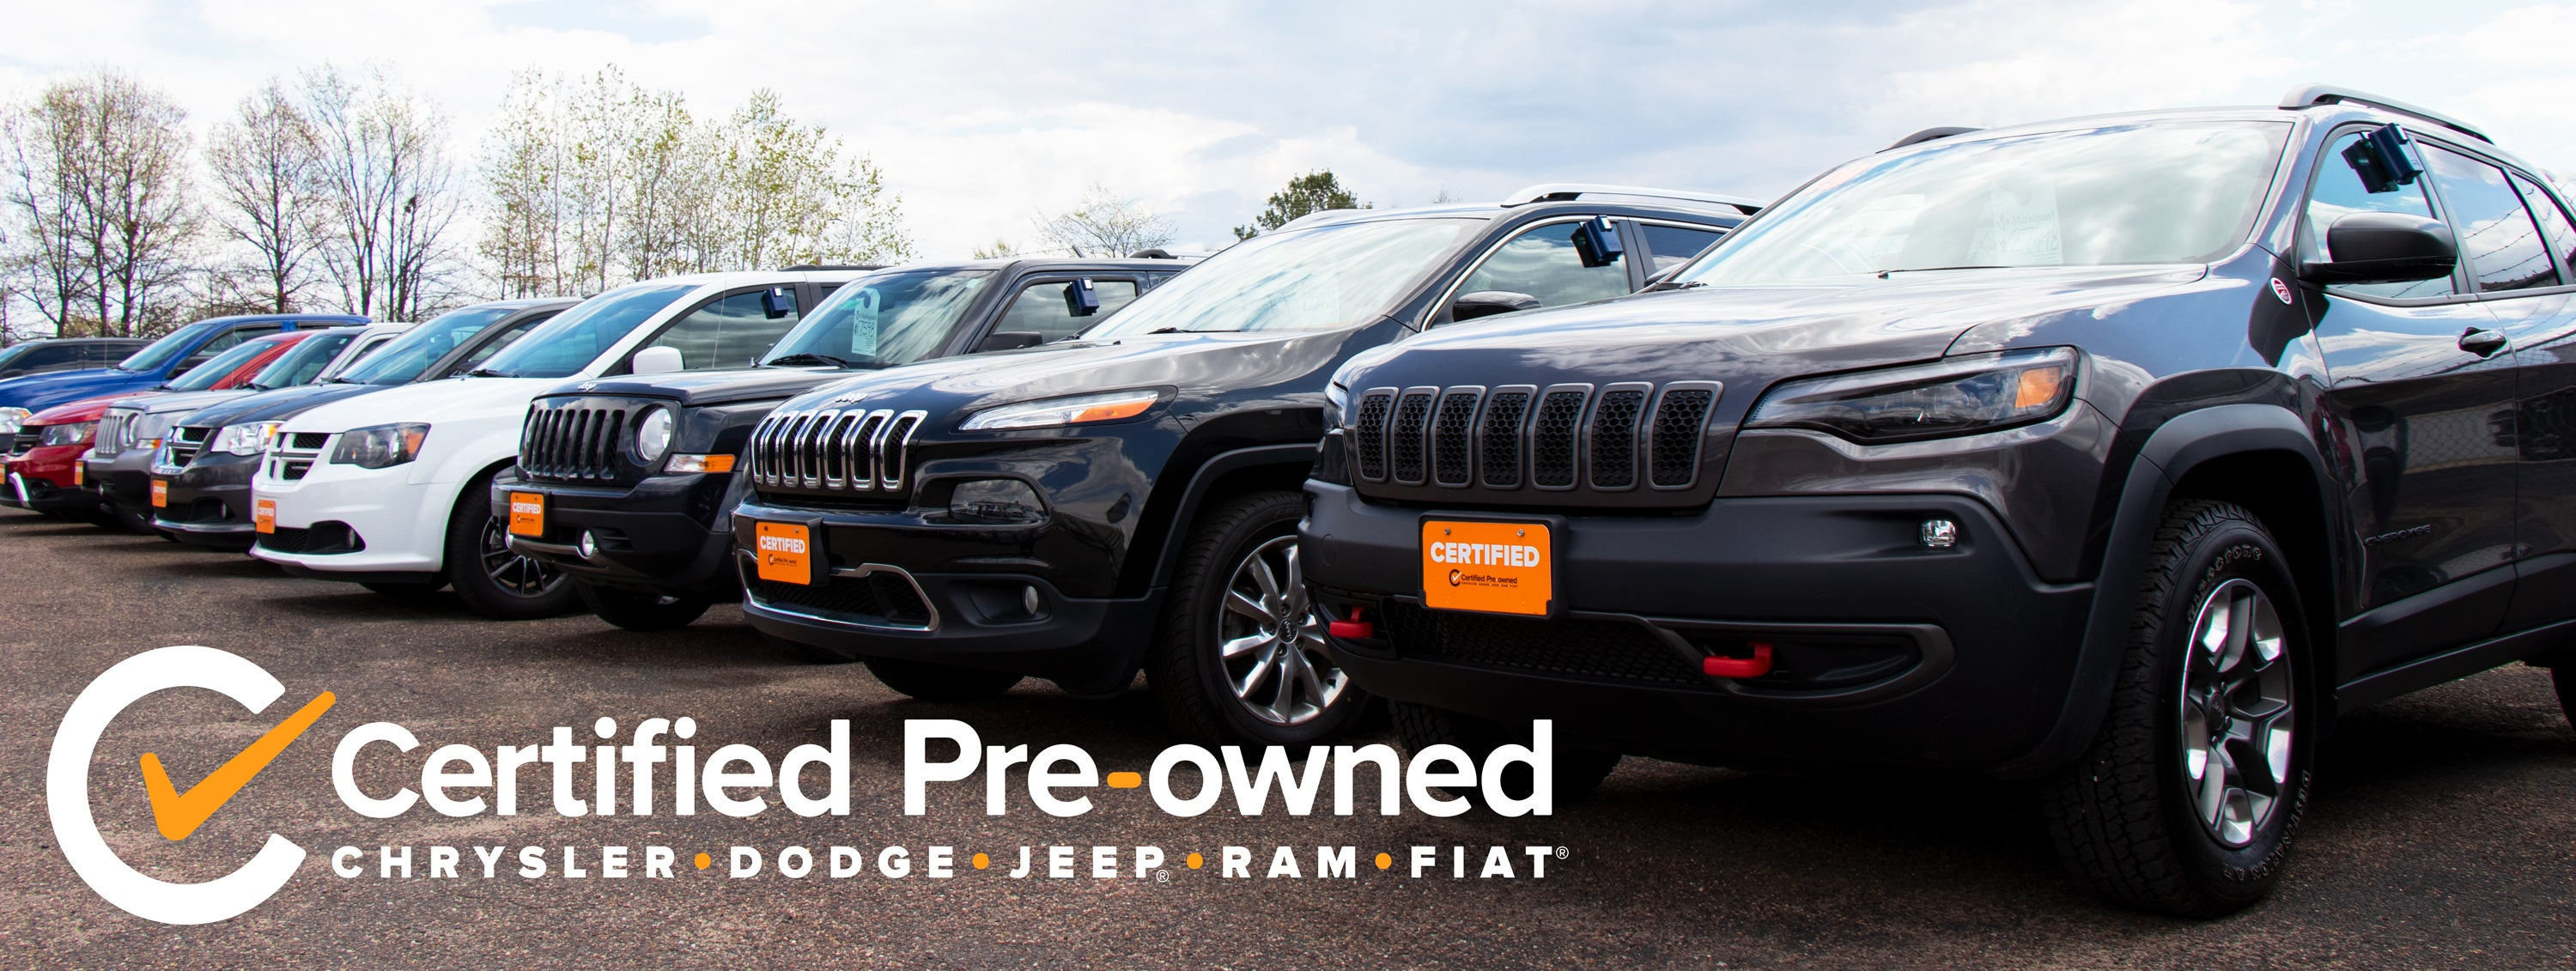 Certified Pre Owned Jeep >> Certified Pre Owned Chrysler Dodge Jeep Ram Vehicles Available In